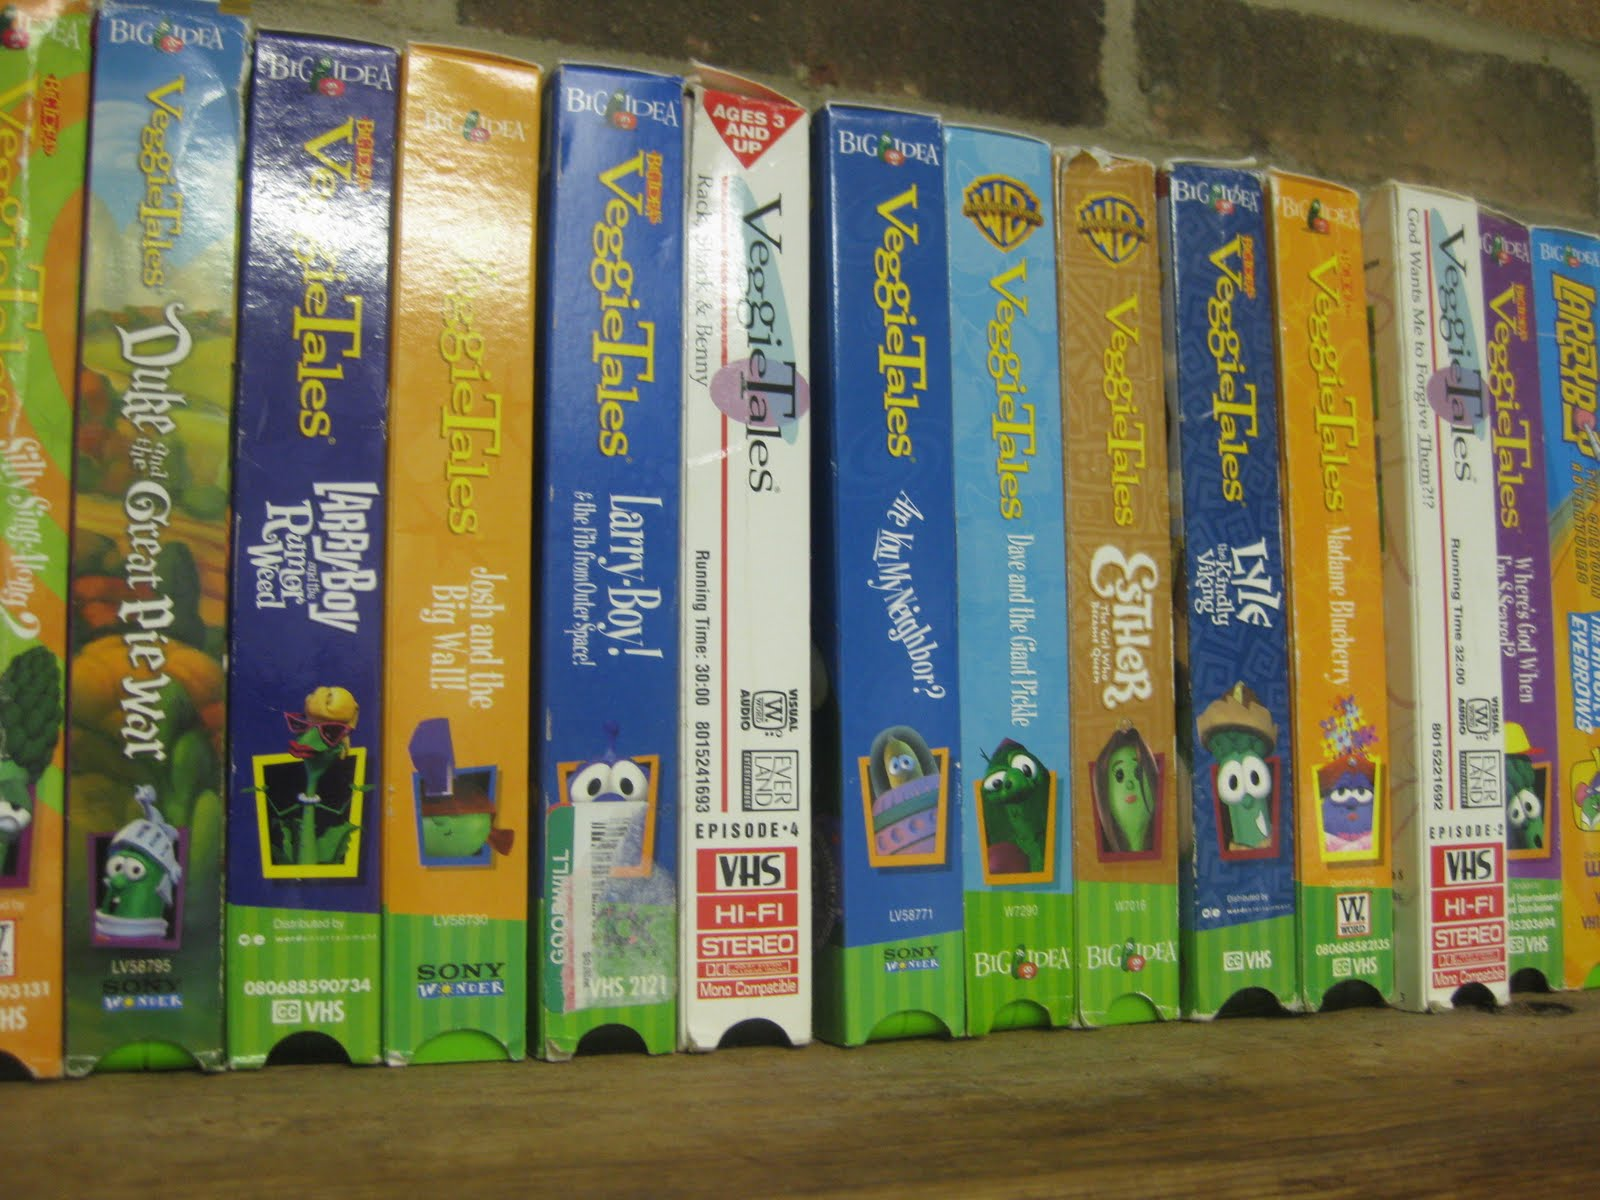 16 Veggietales Vhs Related Keywords & Suggestions - 16 Veggietales Vhs